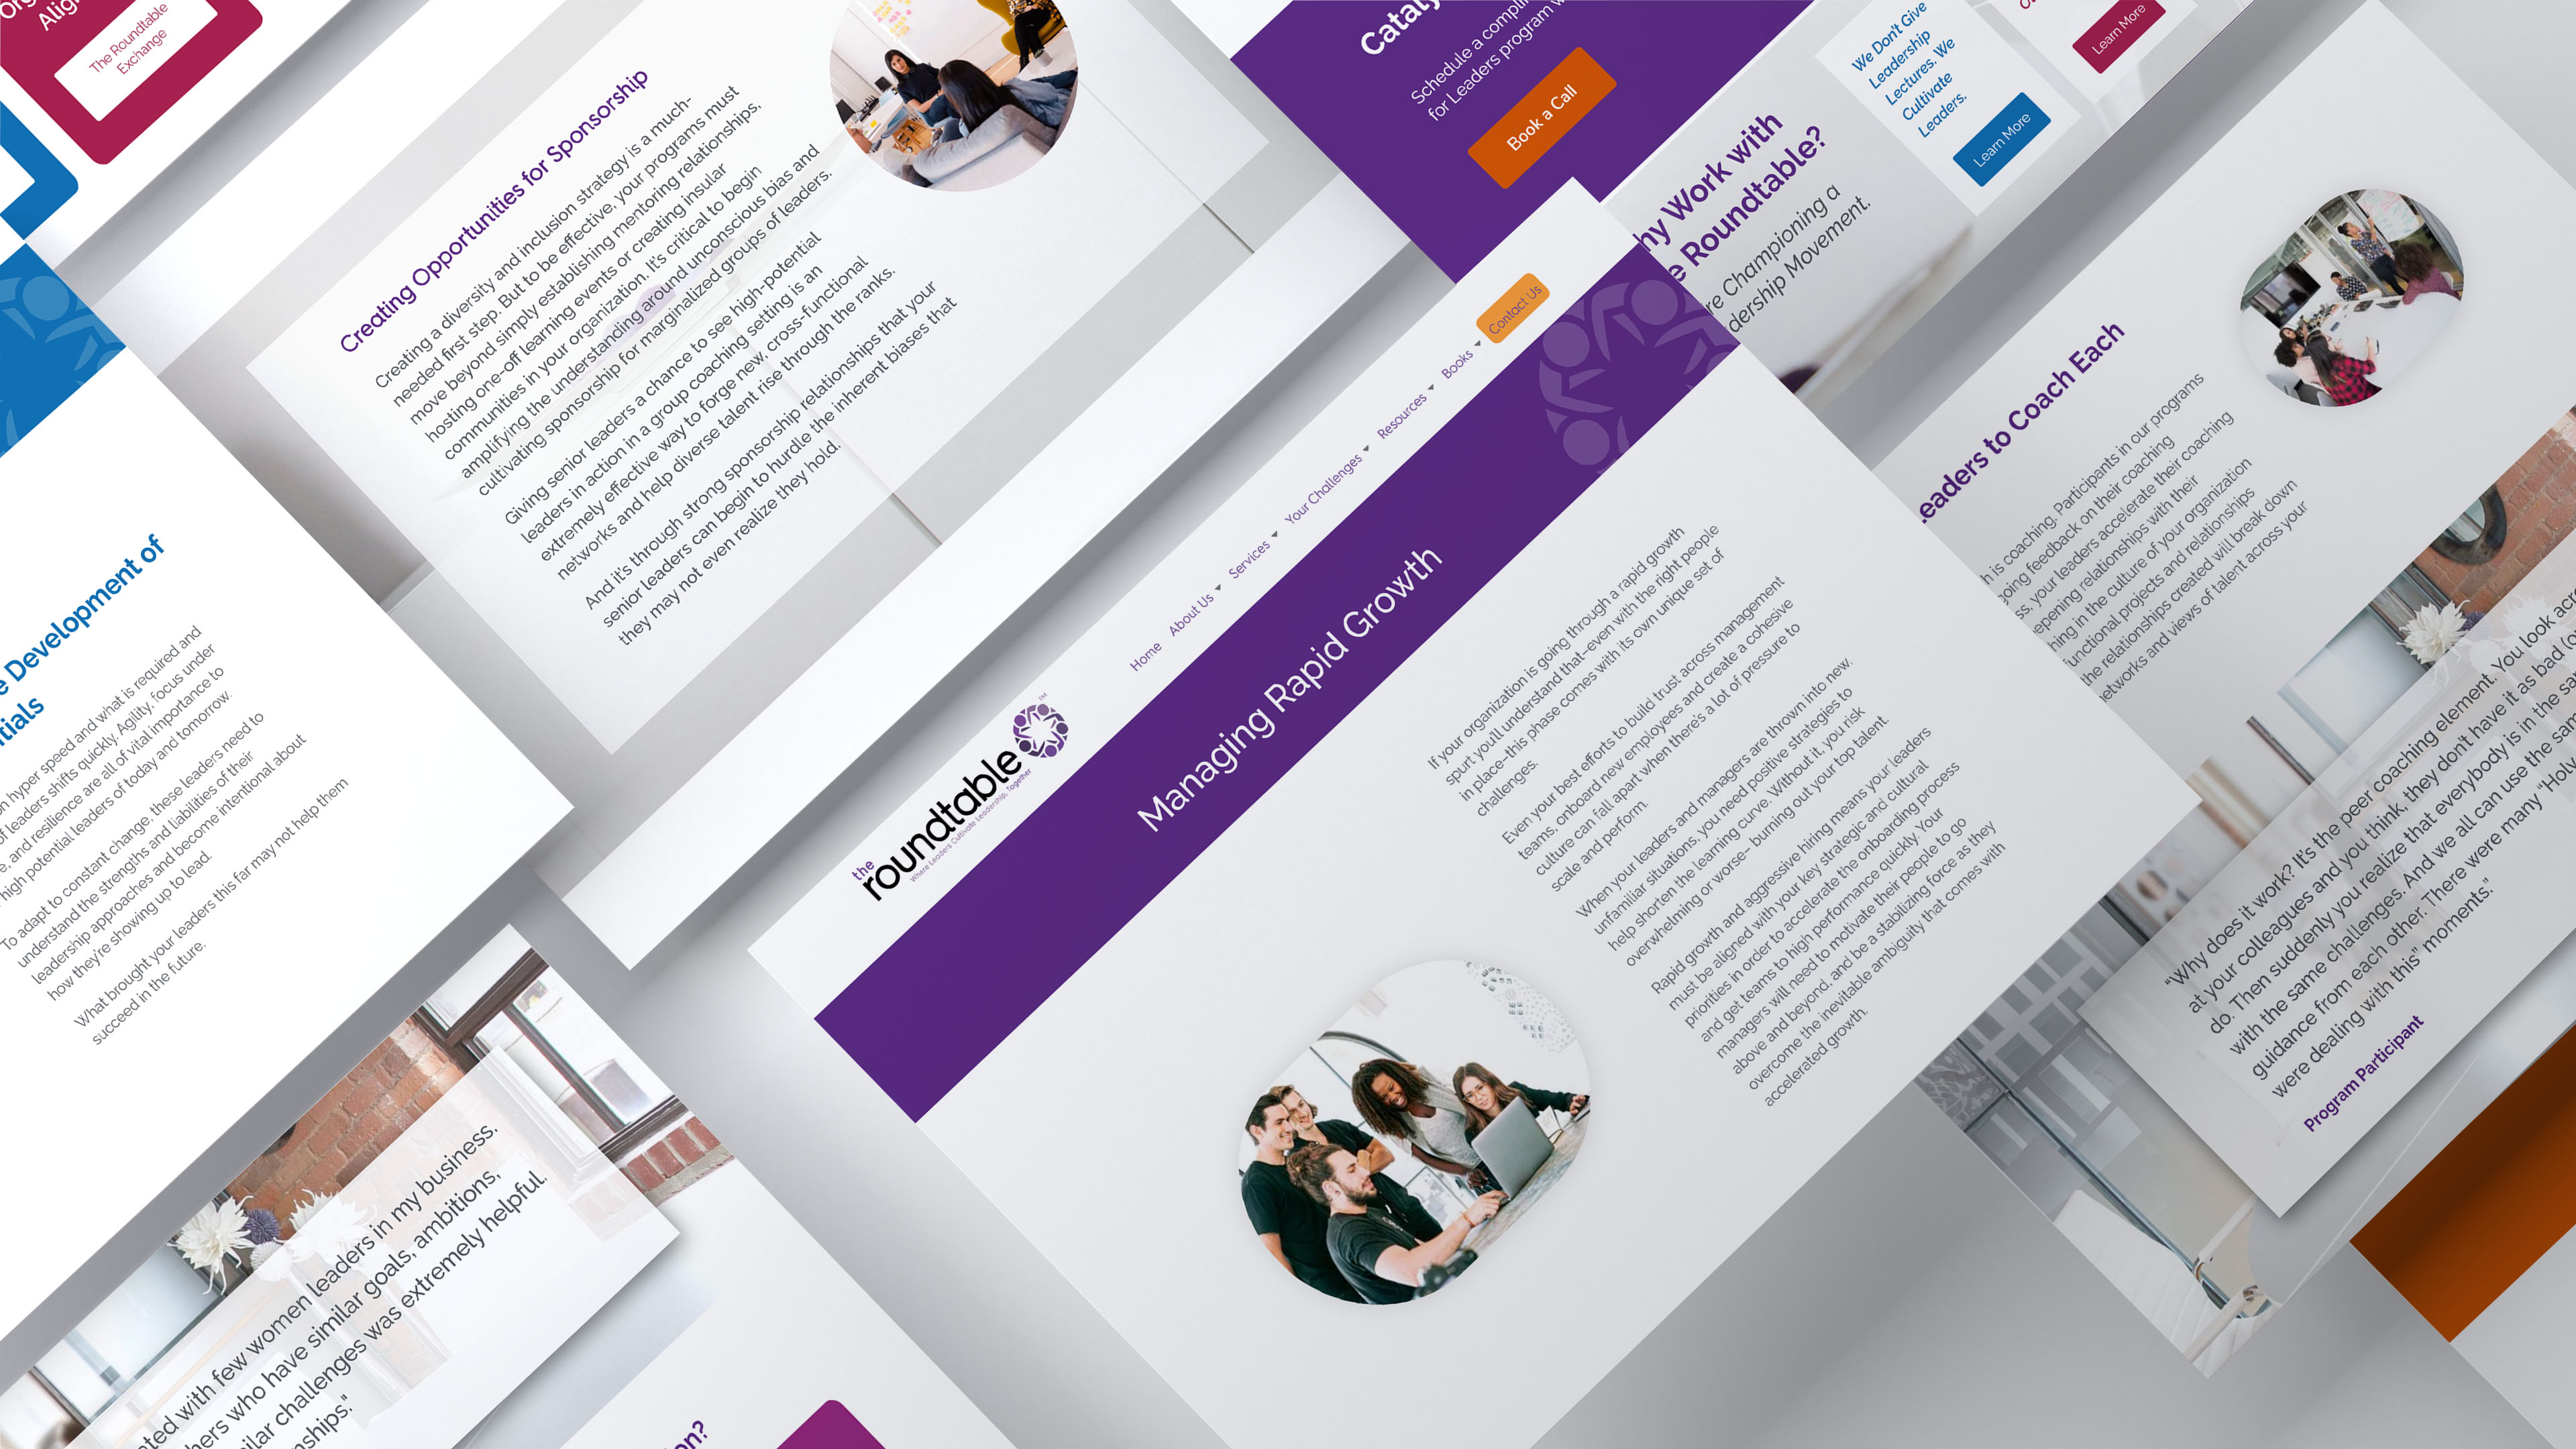 webpage mockups of roundtable website displayed at an angle